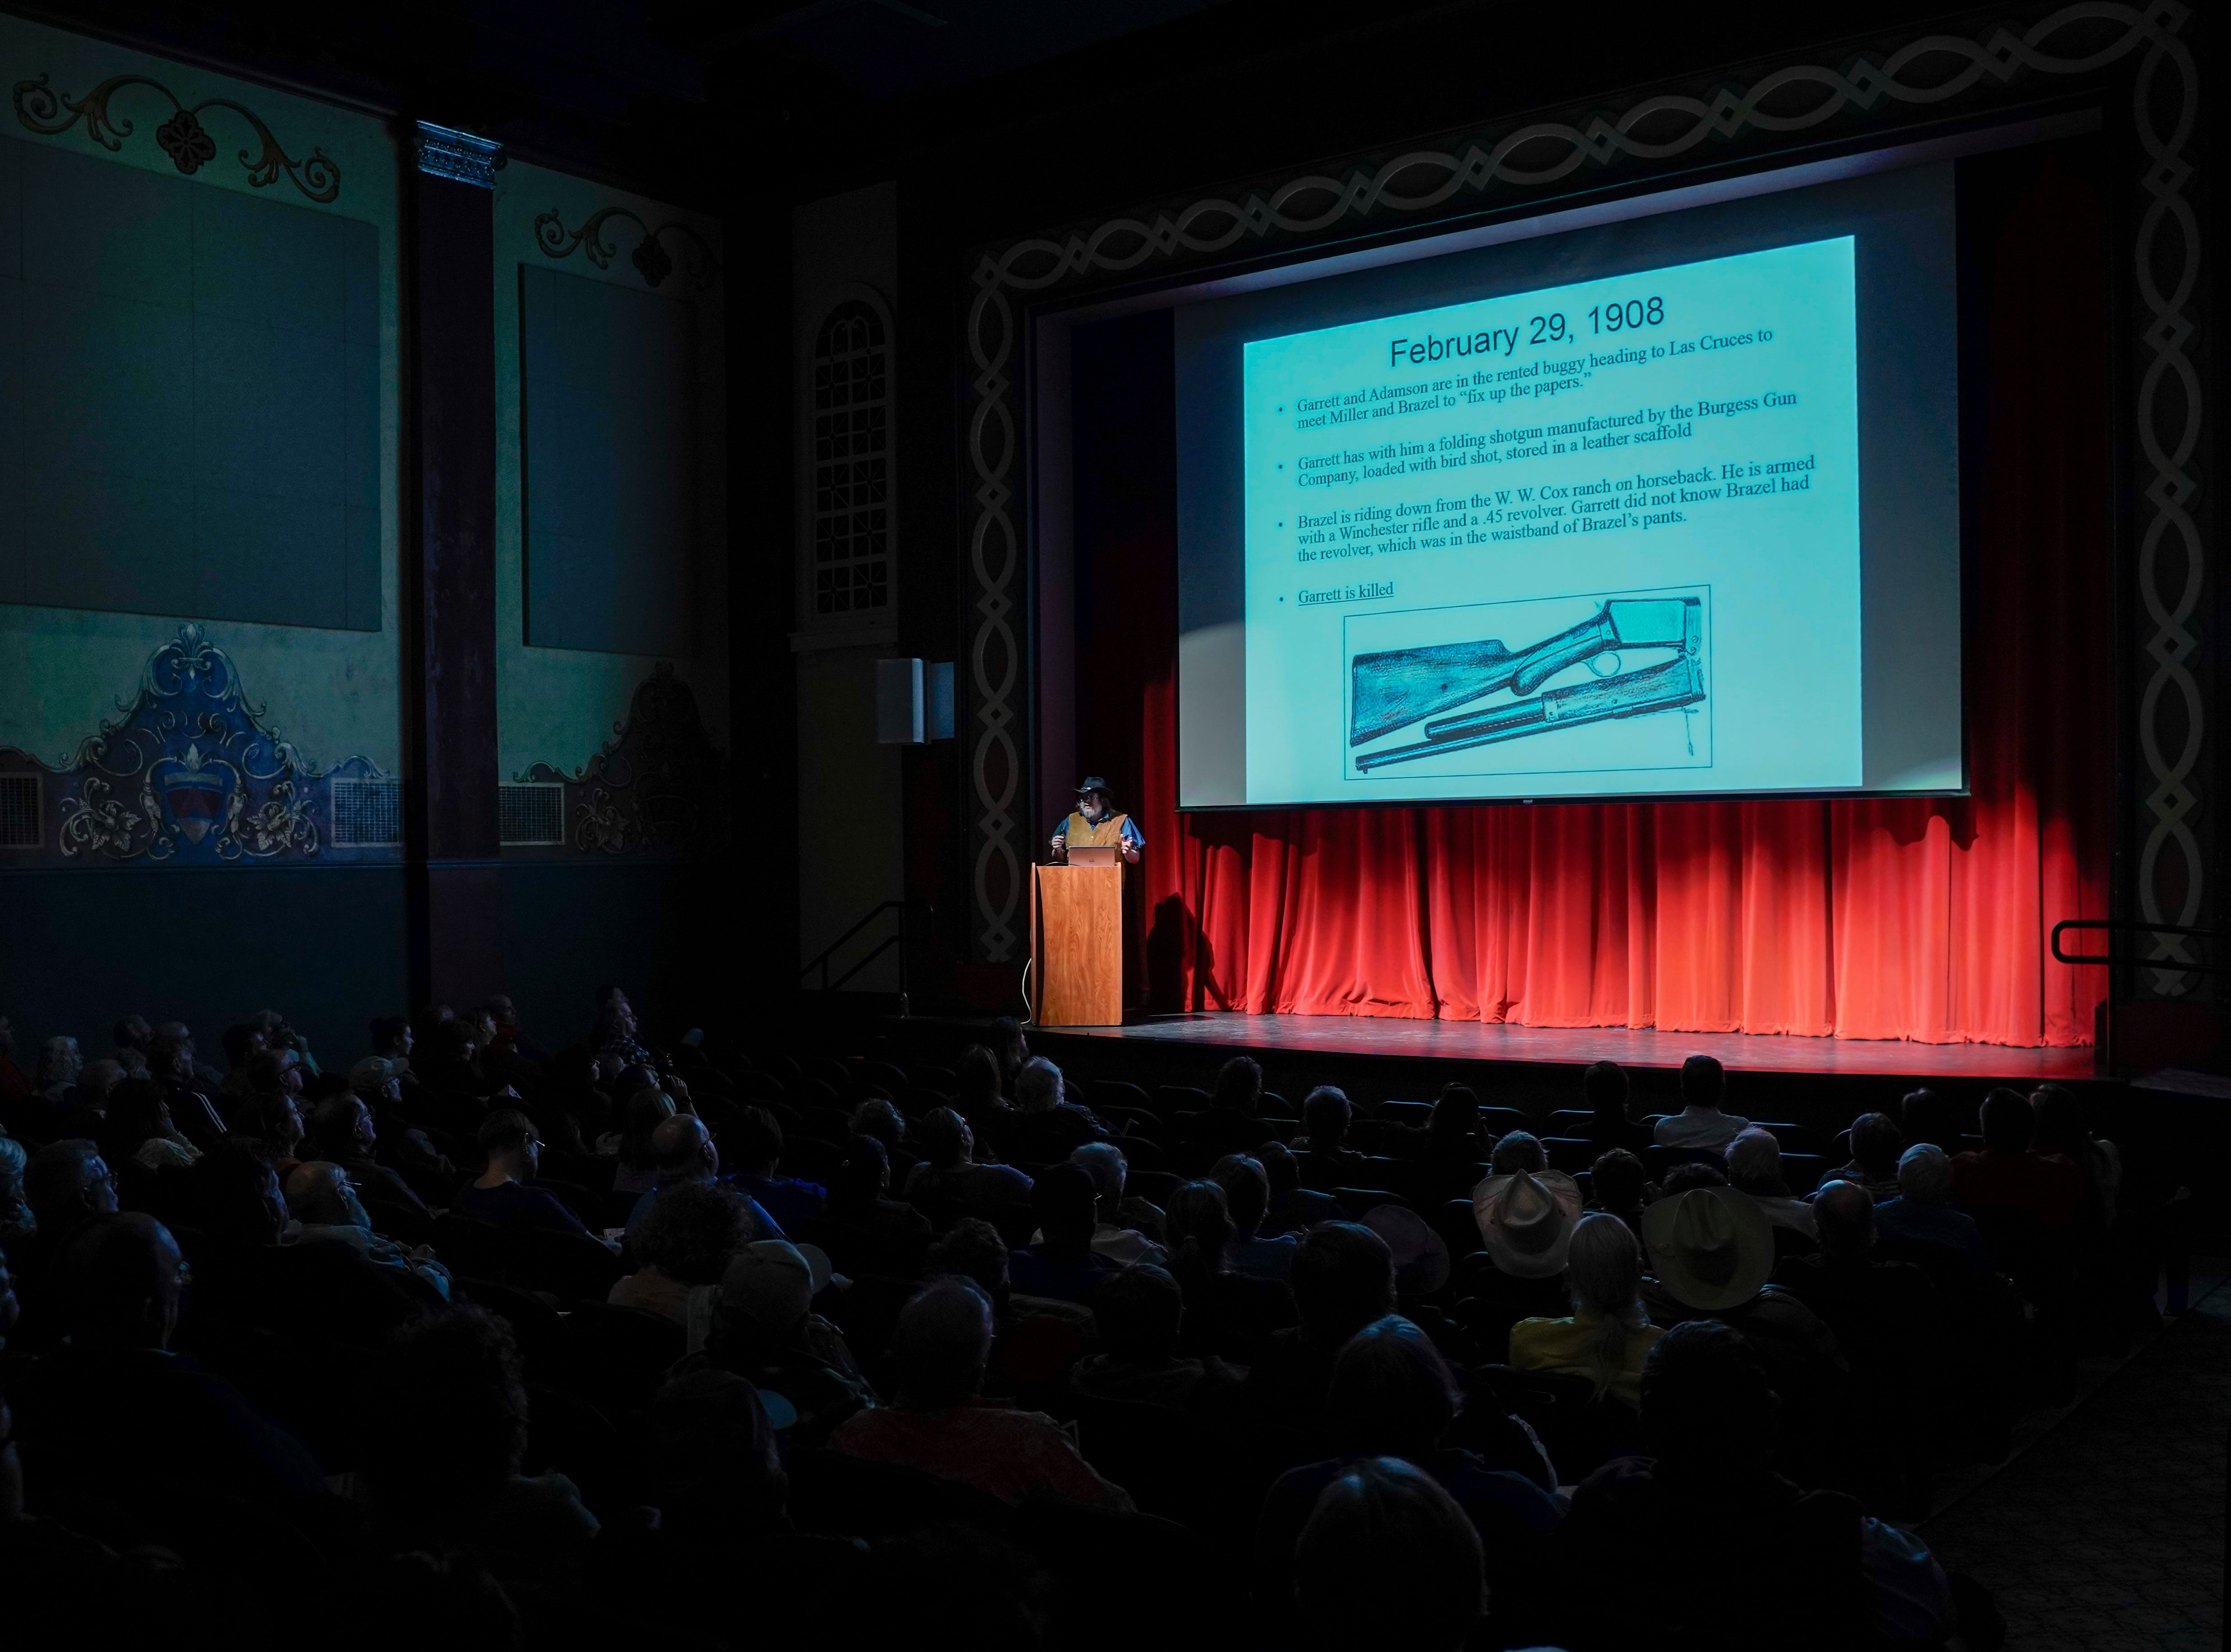 David G. Thomas, author and historian, describes the circumstances surrounding Pat Garrett's 1909 murder in the Rio Grande Theatre in downtown Las Cruces, Saturday, Feb. 2, 2019. Many theories have surfaced about who killed Garrett, but most believe it was Jesse Wayne Brazel who pulled the trigger. Brazel was acquitted in a murder trial.